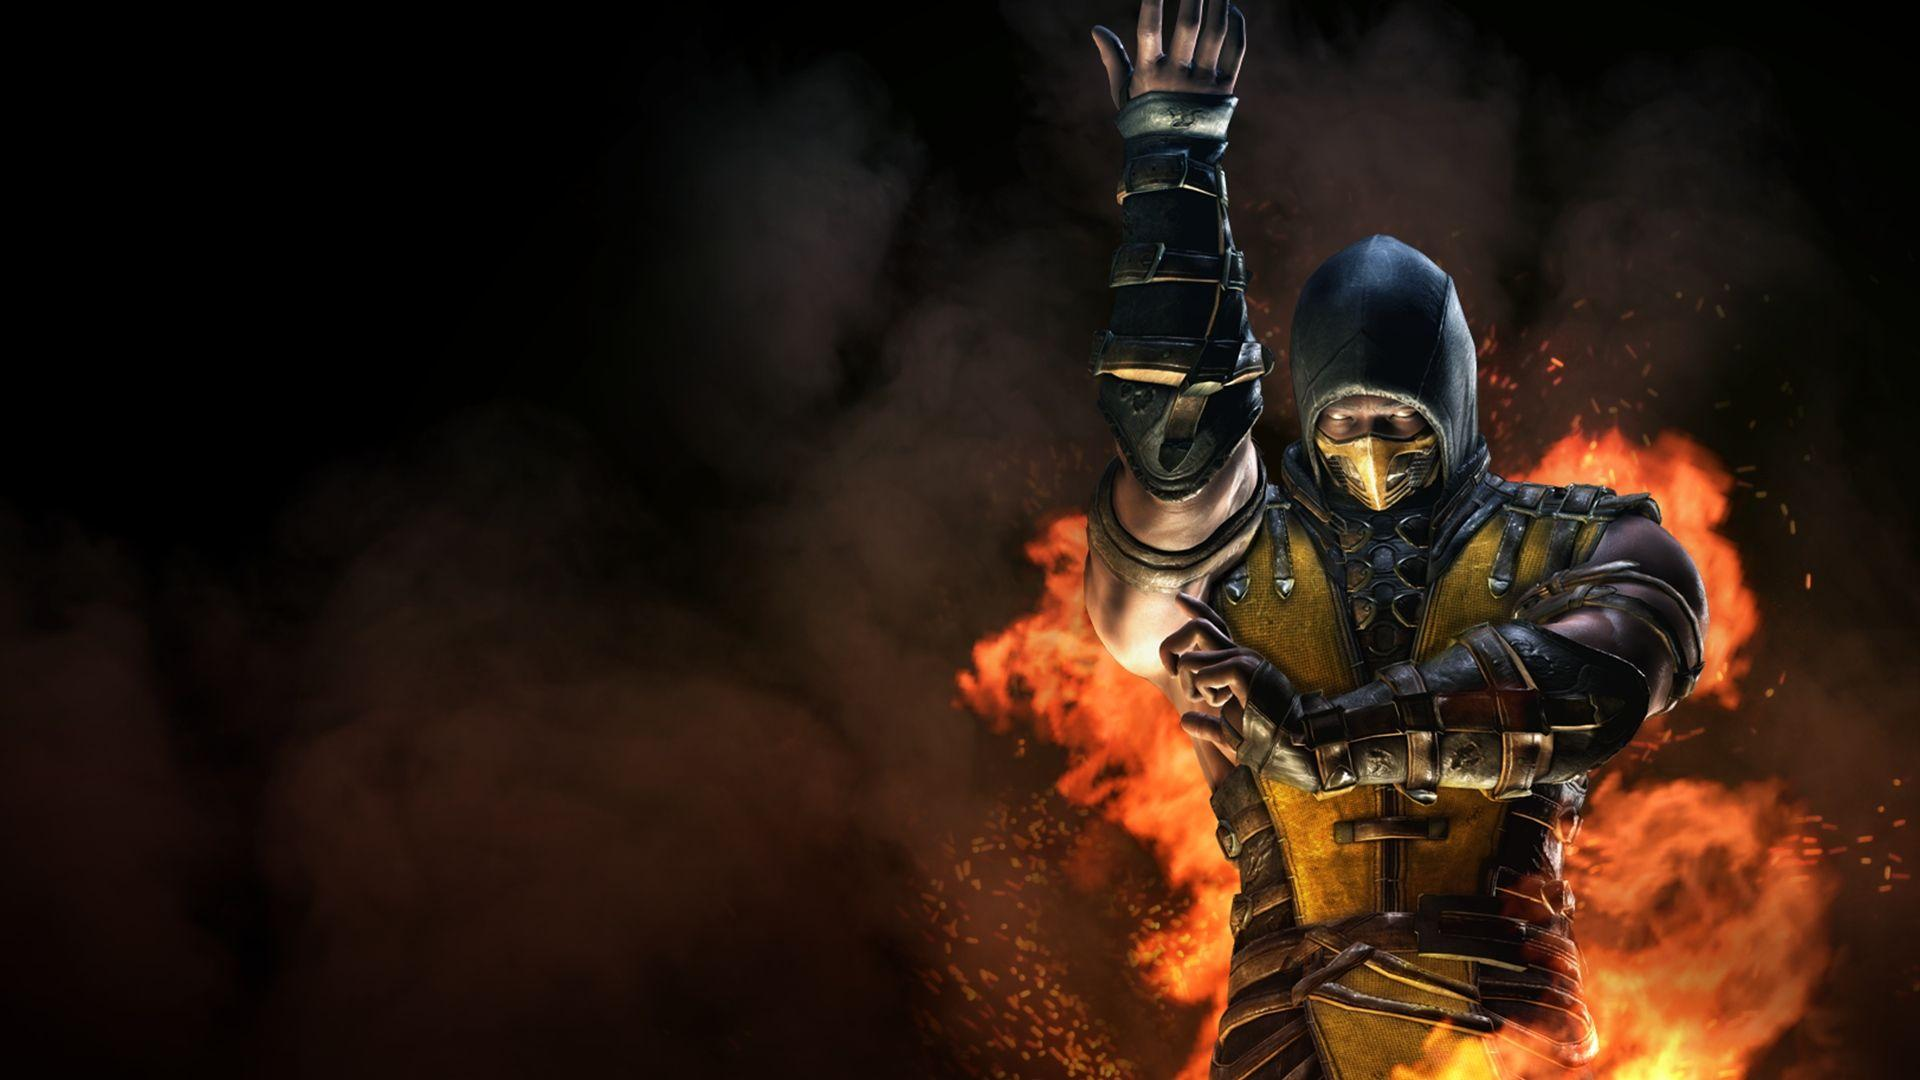 Mortal Kombat X Inferno Scorpion Wallpapers